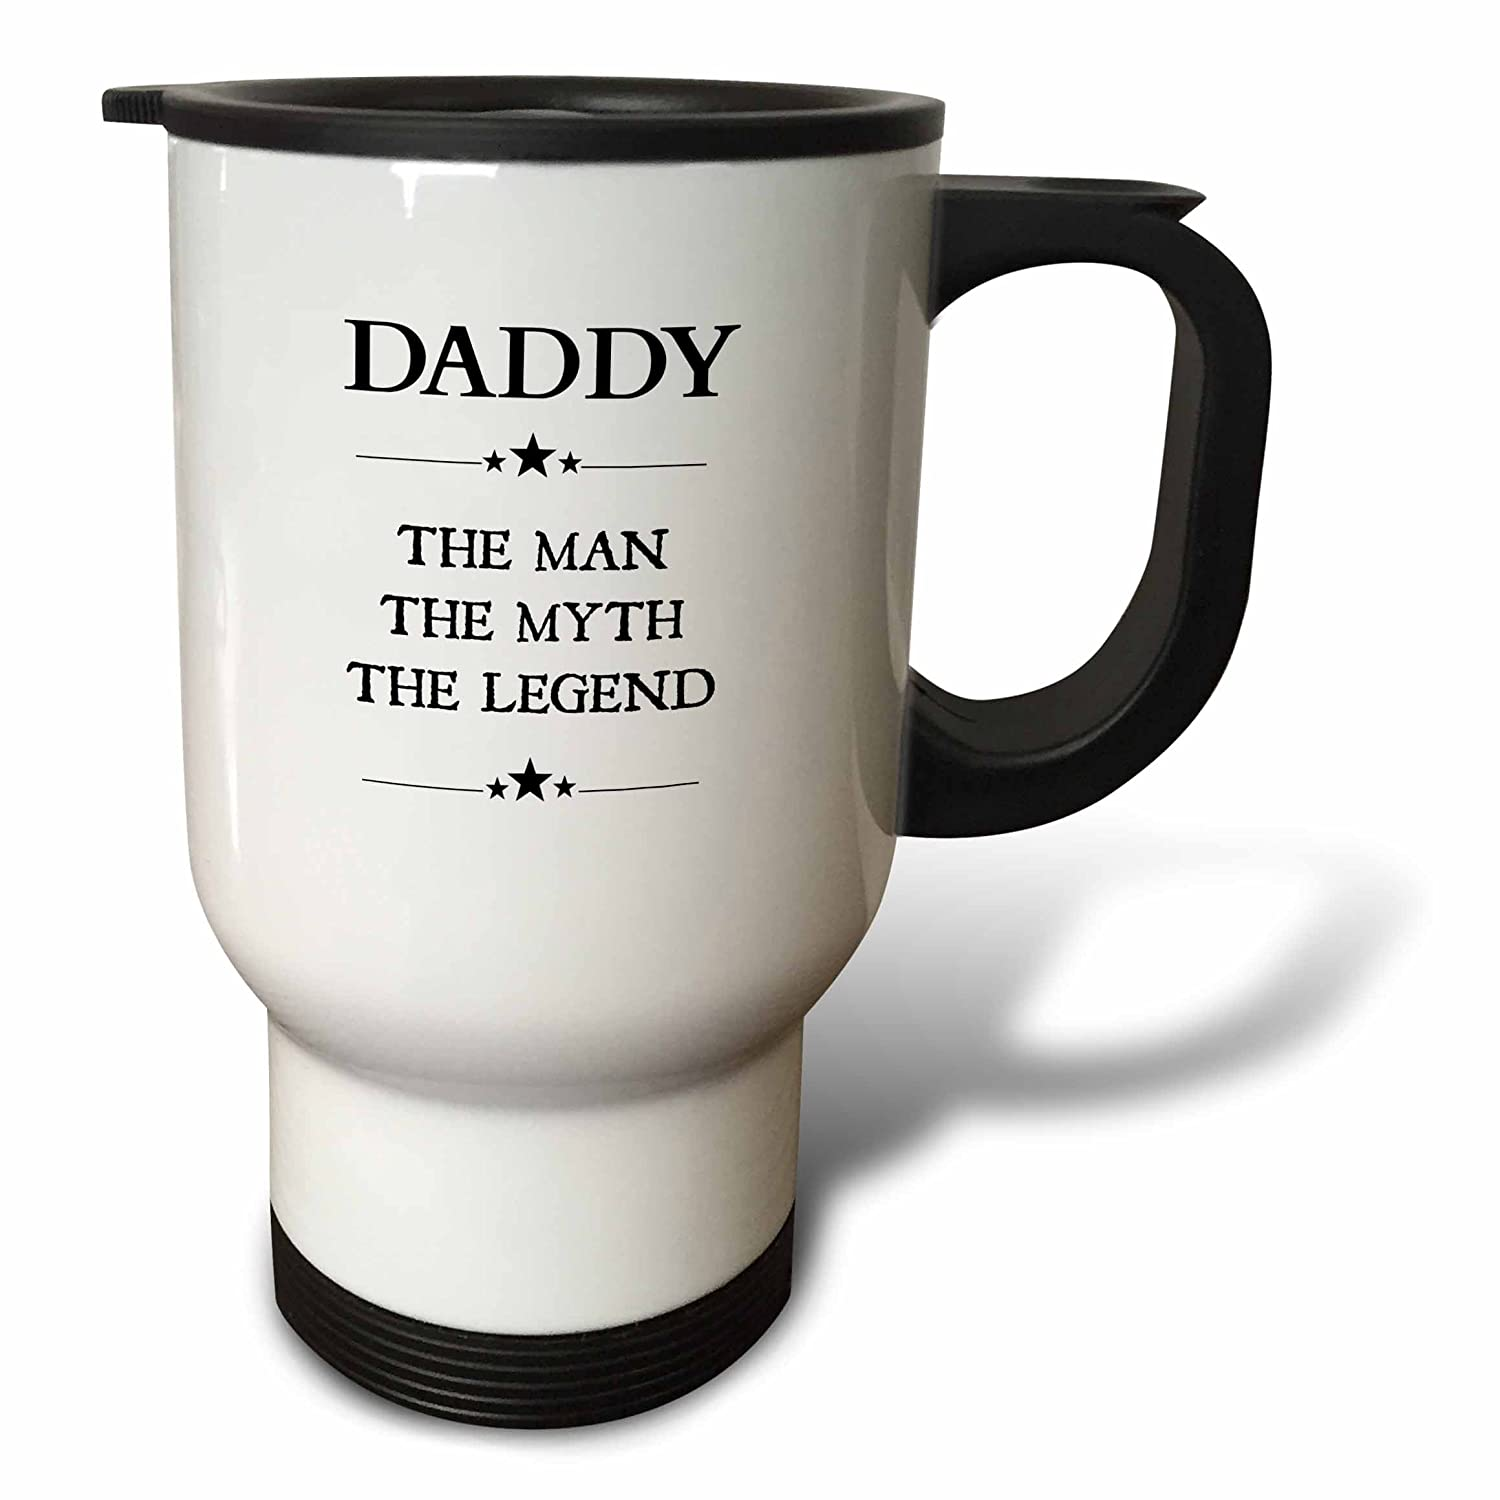 3dpink tm_221822_1 Daddy the man the myth the legend-Travel Mug, 14 oz, Stainless Steel, White